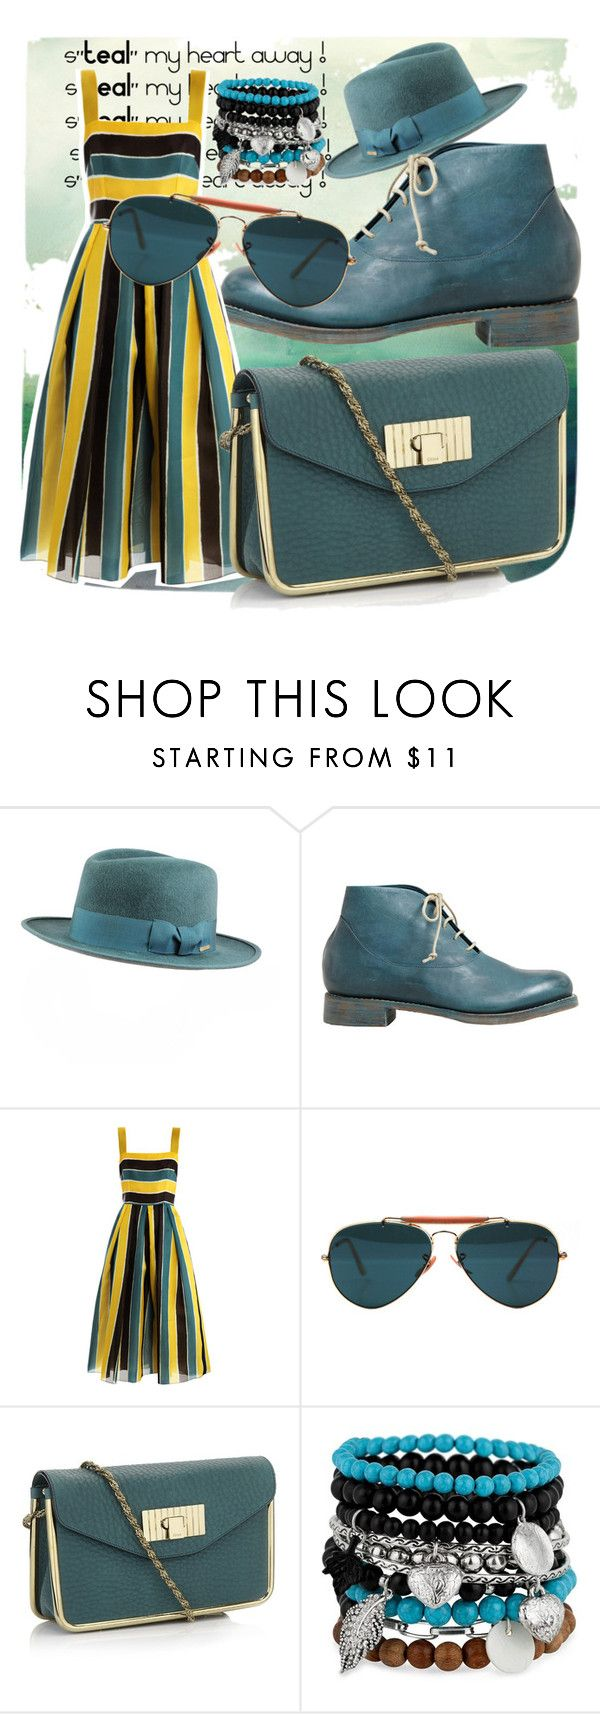 """s""TEAL"" my heart away ! "" by raisaayu ❤ liked on Polyvore featuring SuperDuper Hats, Cherevichkiotvichki, Dolce&Gabbana, Ray-Ban, Chloé and MOOD"